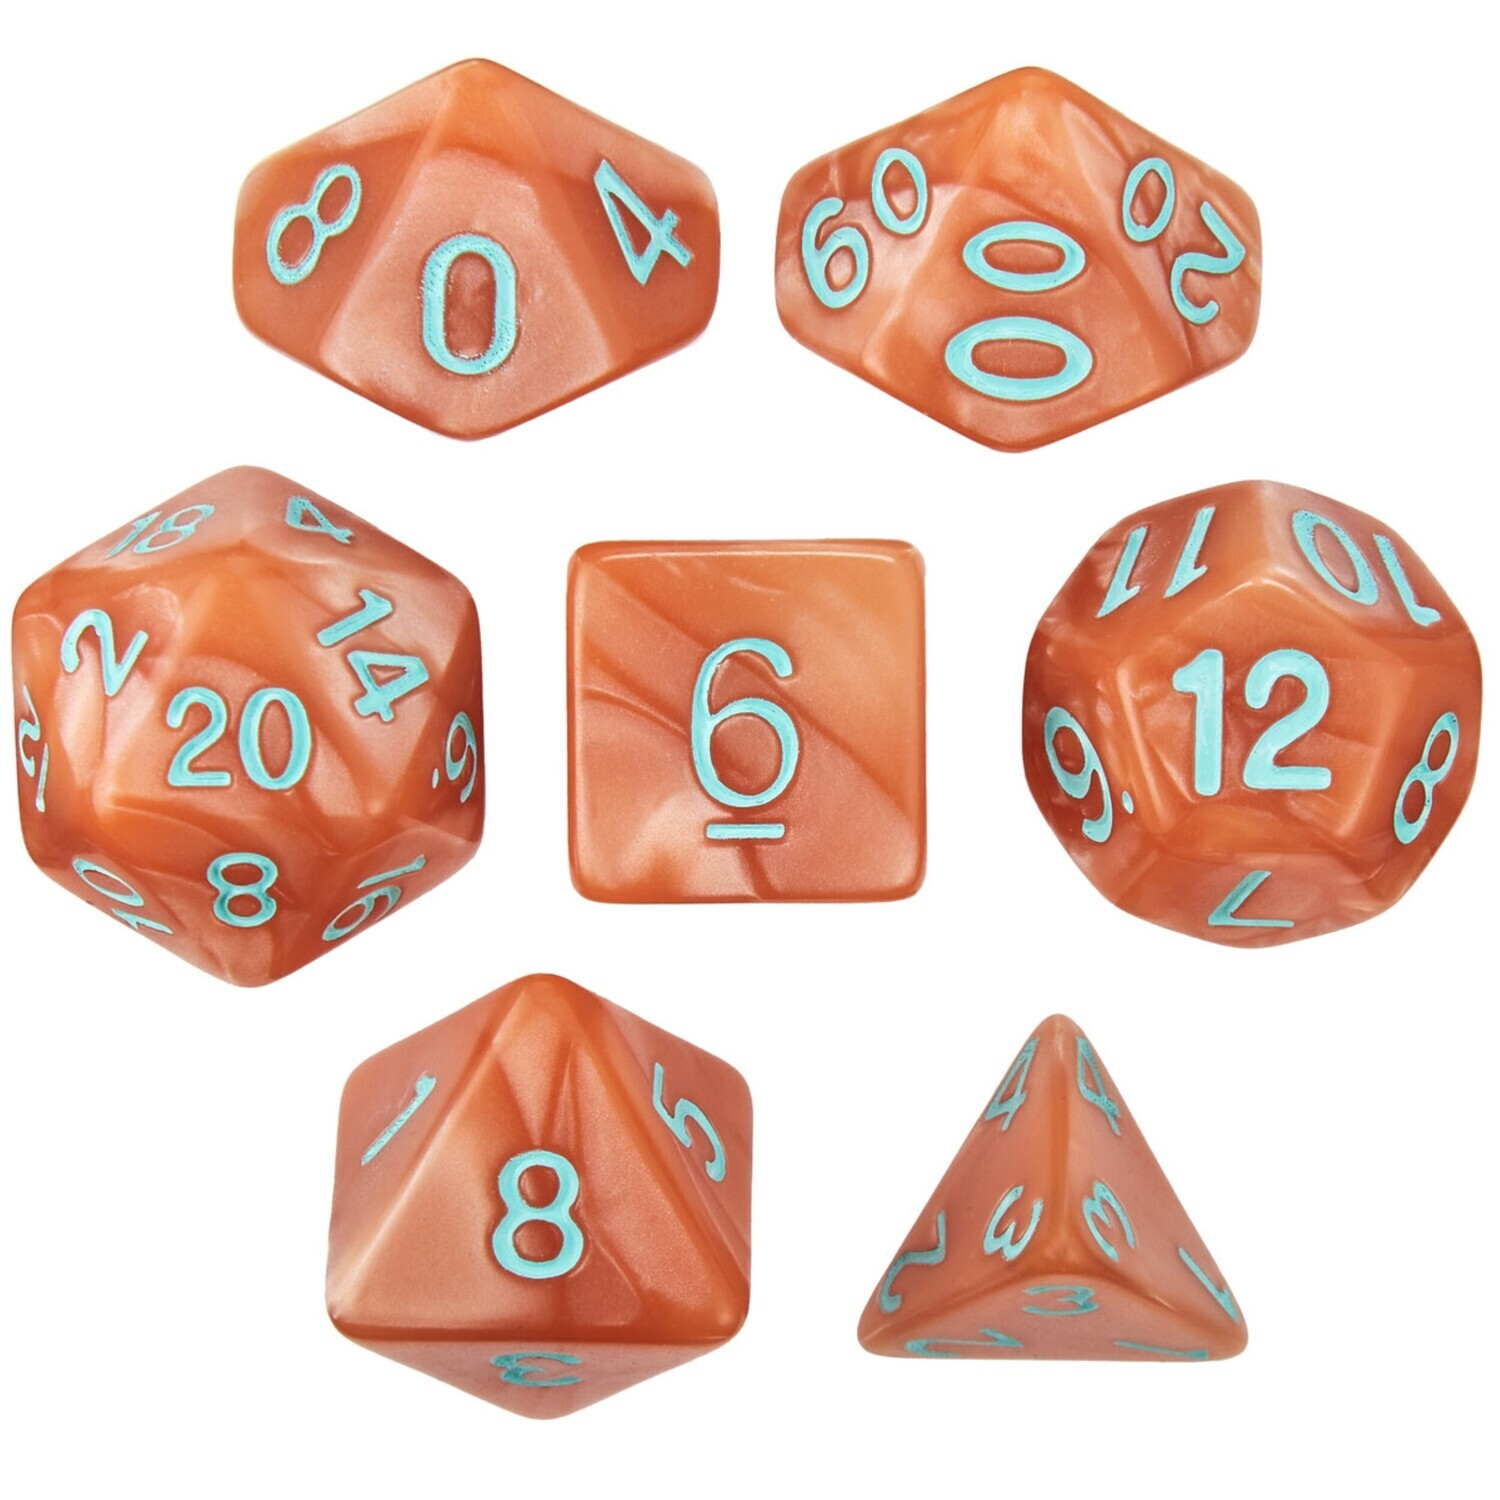 16mm 7 Die Polyhedral Set - Precursor's Legacy - Pearlized Copper With Green Paint - RPG Tabletop Games Roleplay Cards CCG Board Random Roll Decision